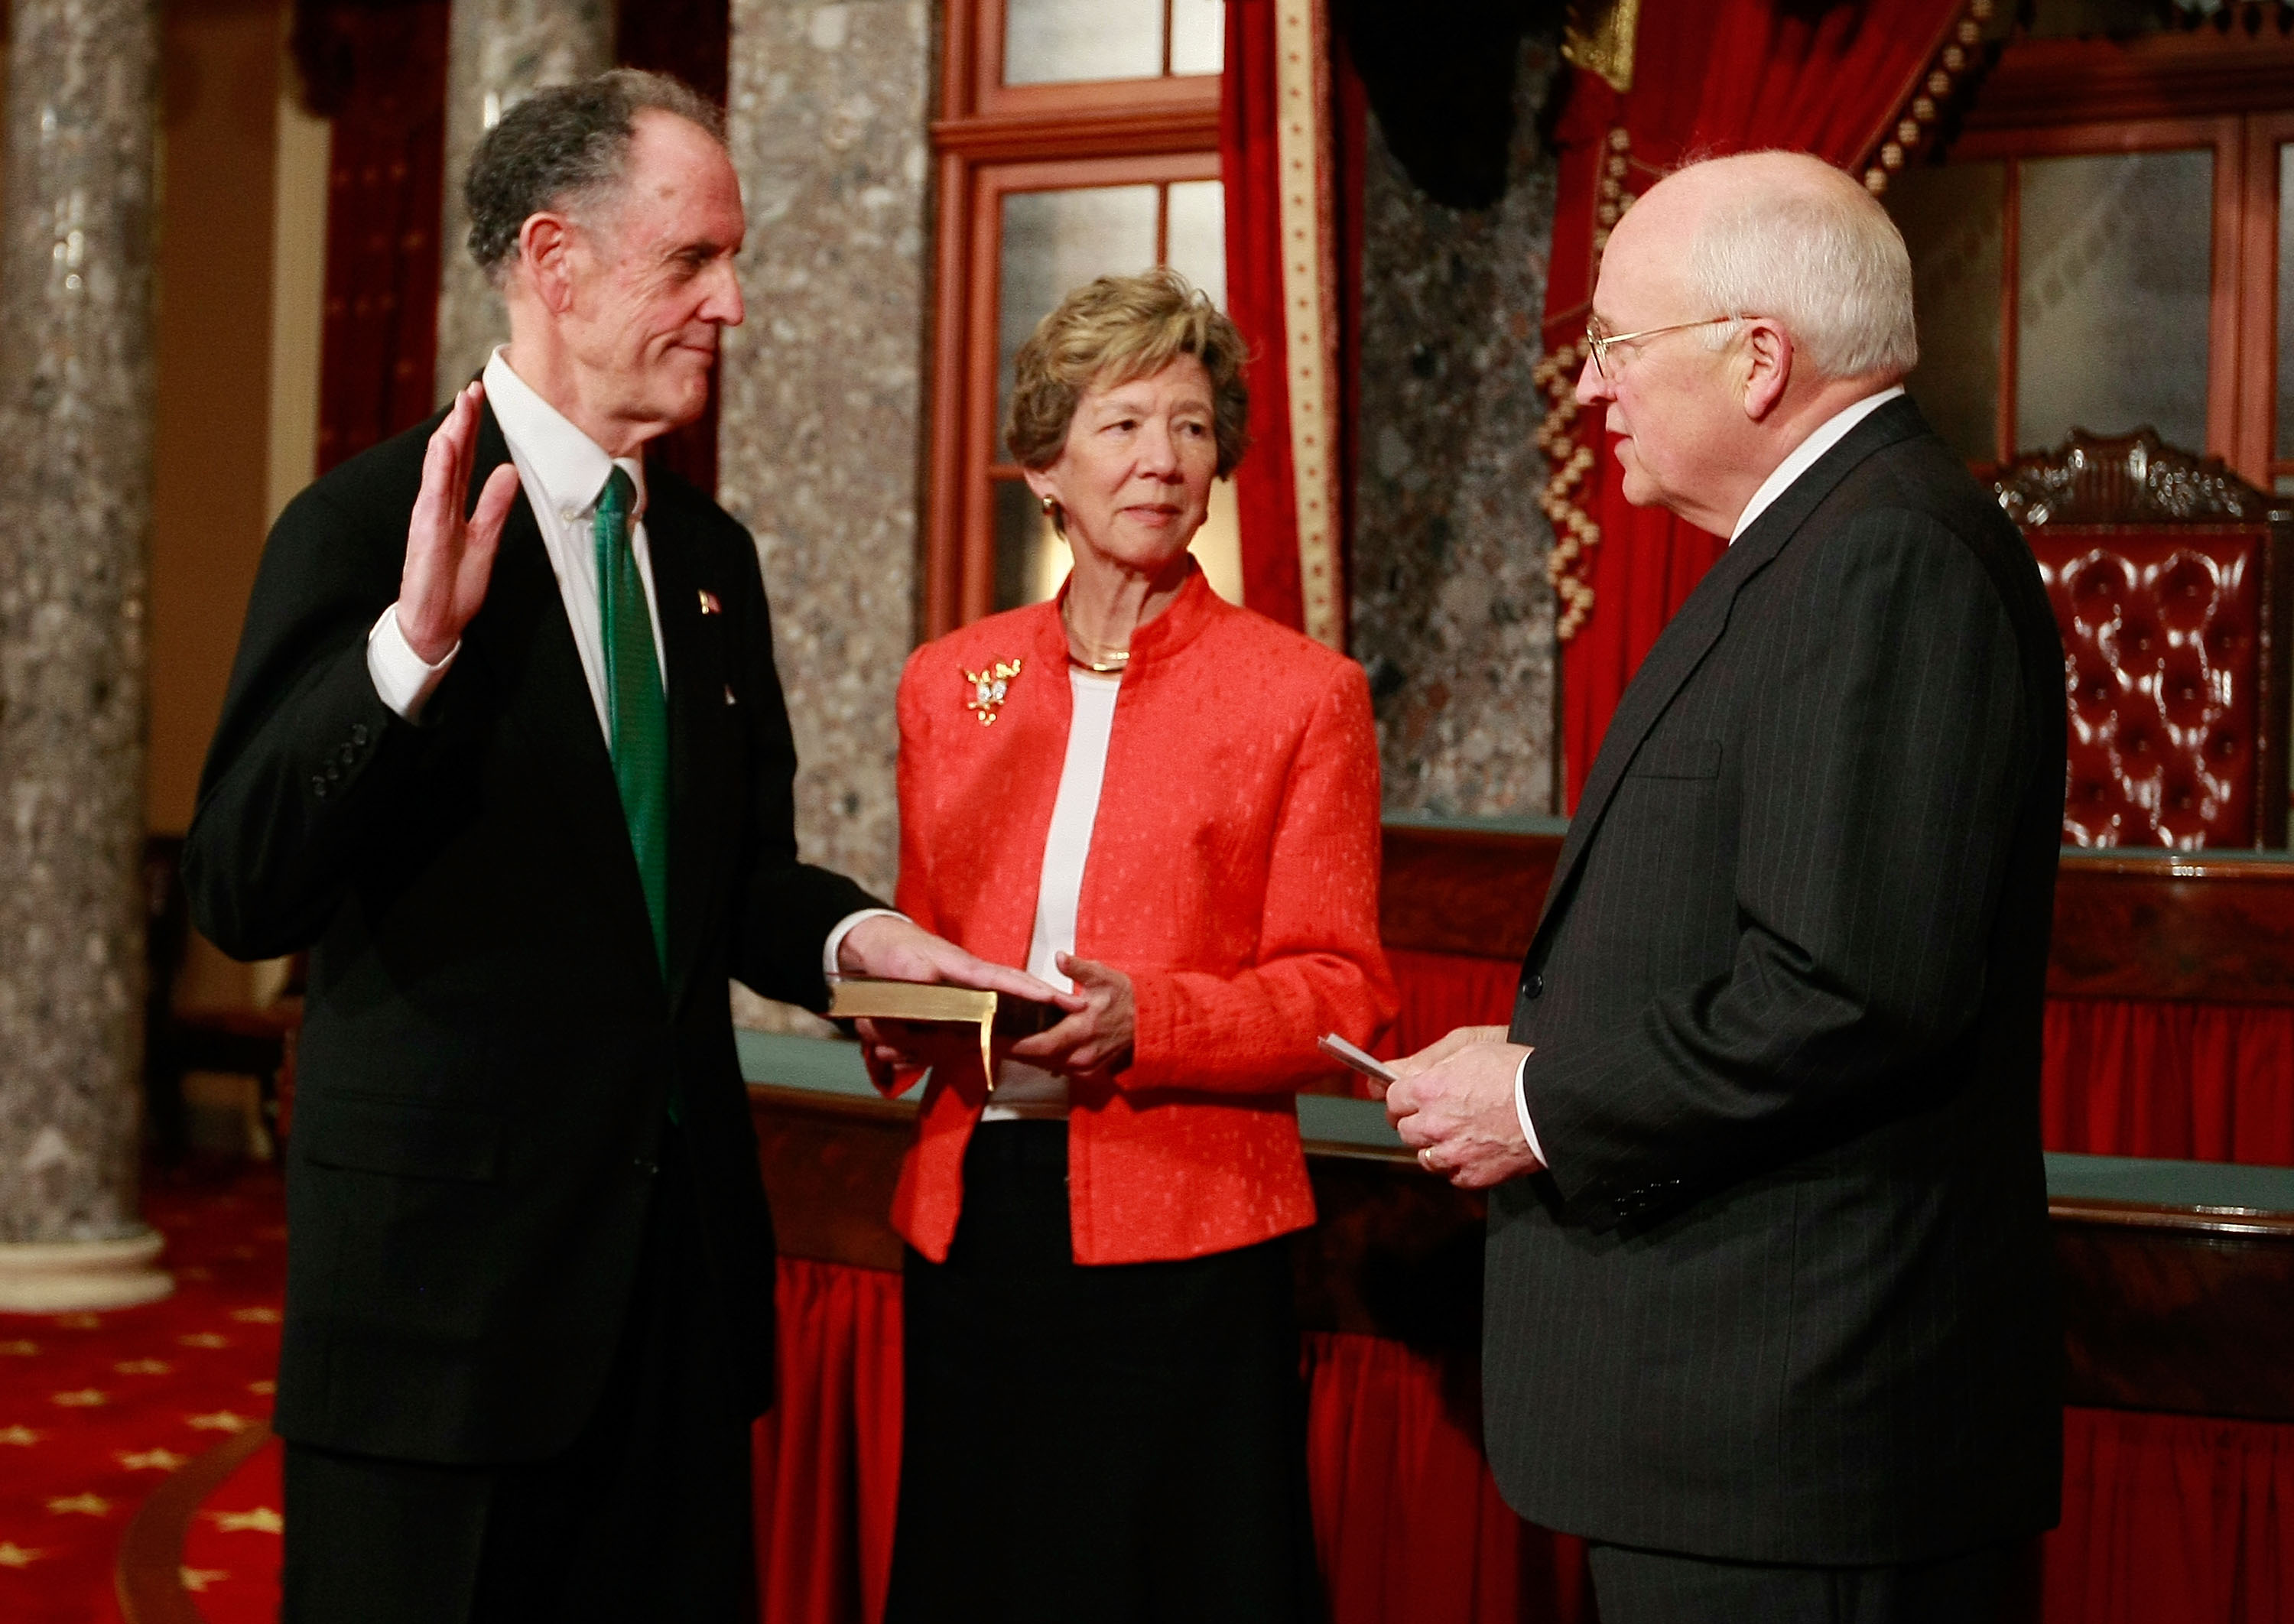 WASHINGTON - JANUARY 16: Appointed Sen. Ted Kaufman (D-DE) (L) raises his right hand and is sworn in by Vice President Dick Cheney (R) as his wife Lynne Kaufman (C) holds the bible in the Old Senate Chamber at the U.S. Capitol on January 16, 2009 in Washington, DC. Governor Ruth Ann Minner of Delaware appointed Kaufman to take the seat as a junior Senator left vacant by Vice President-Elect Jospeh Biden. (Photo by Mark Wilson/Getty Images)